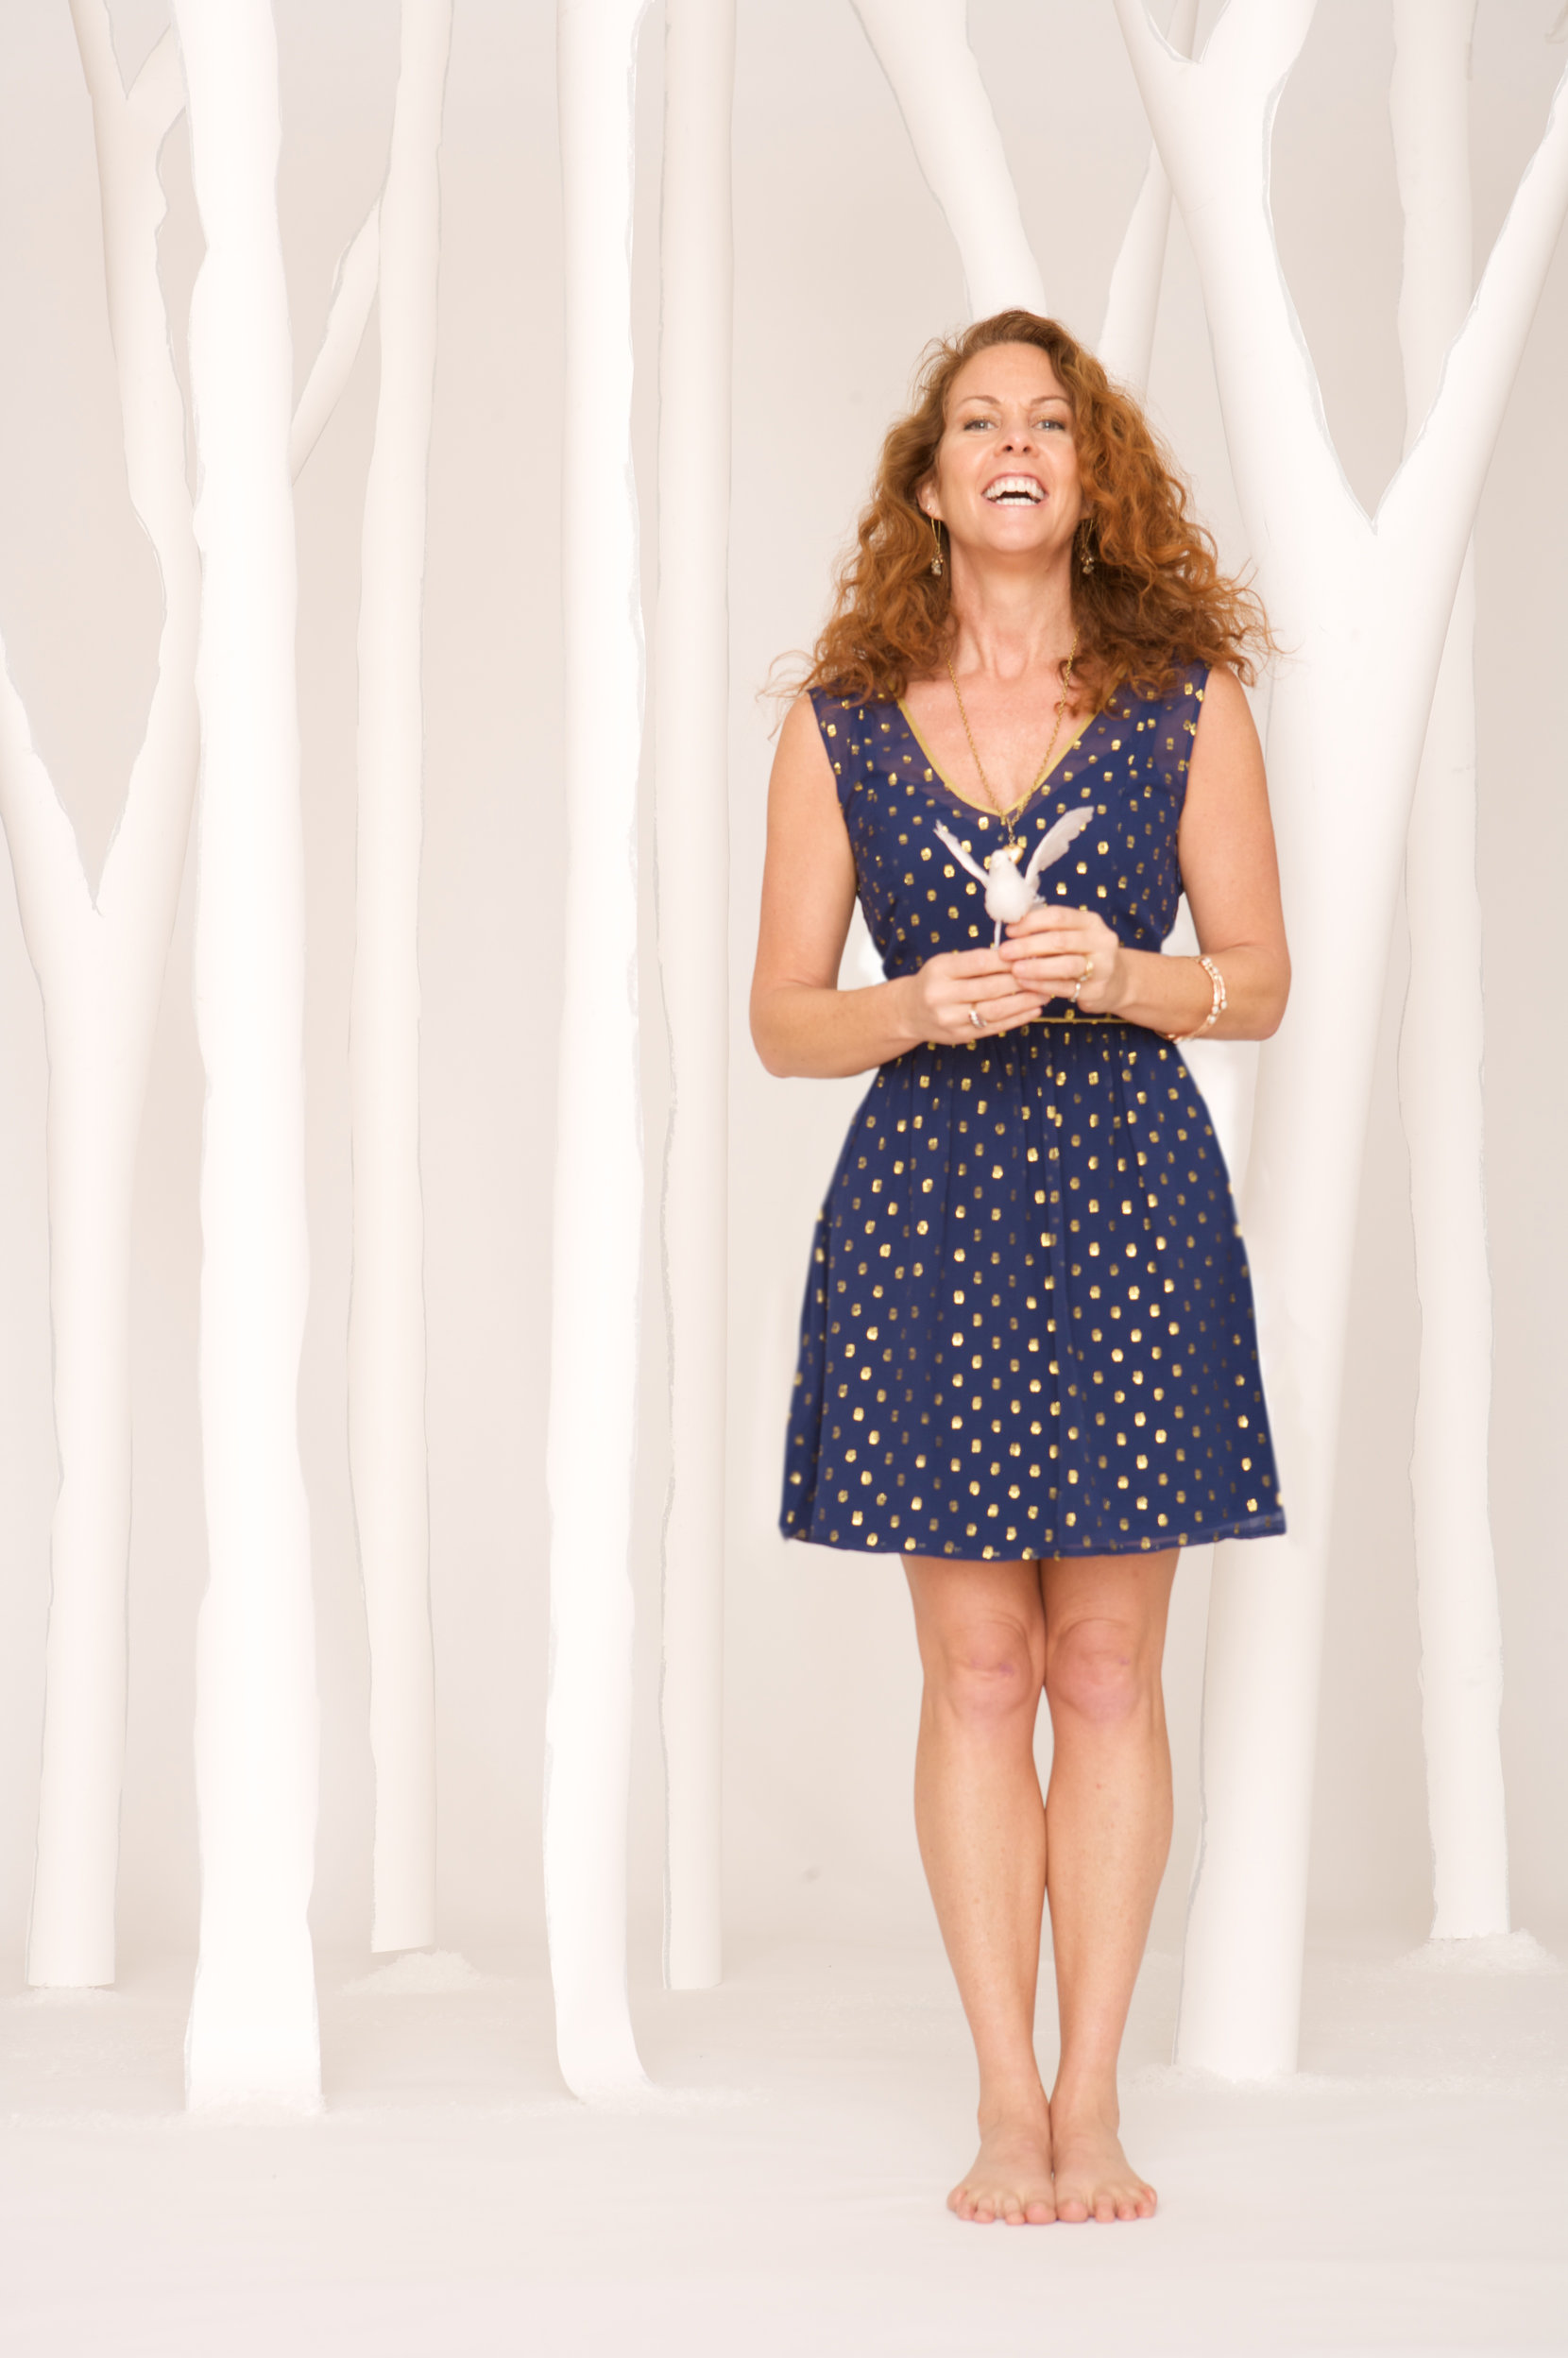 a woman stands to the right of the image, in front of a backdrop of light gray and white tree silhouettes. she is barefoot, wearing a navy blue dress with yellow polka dots and a cinched waist. her hair is curly, long, and parted to the side. she is holding a fake white bird and laughing joyfully.